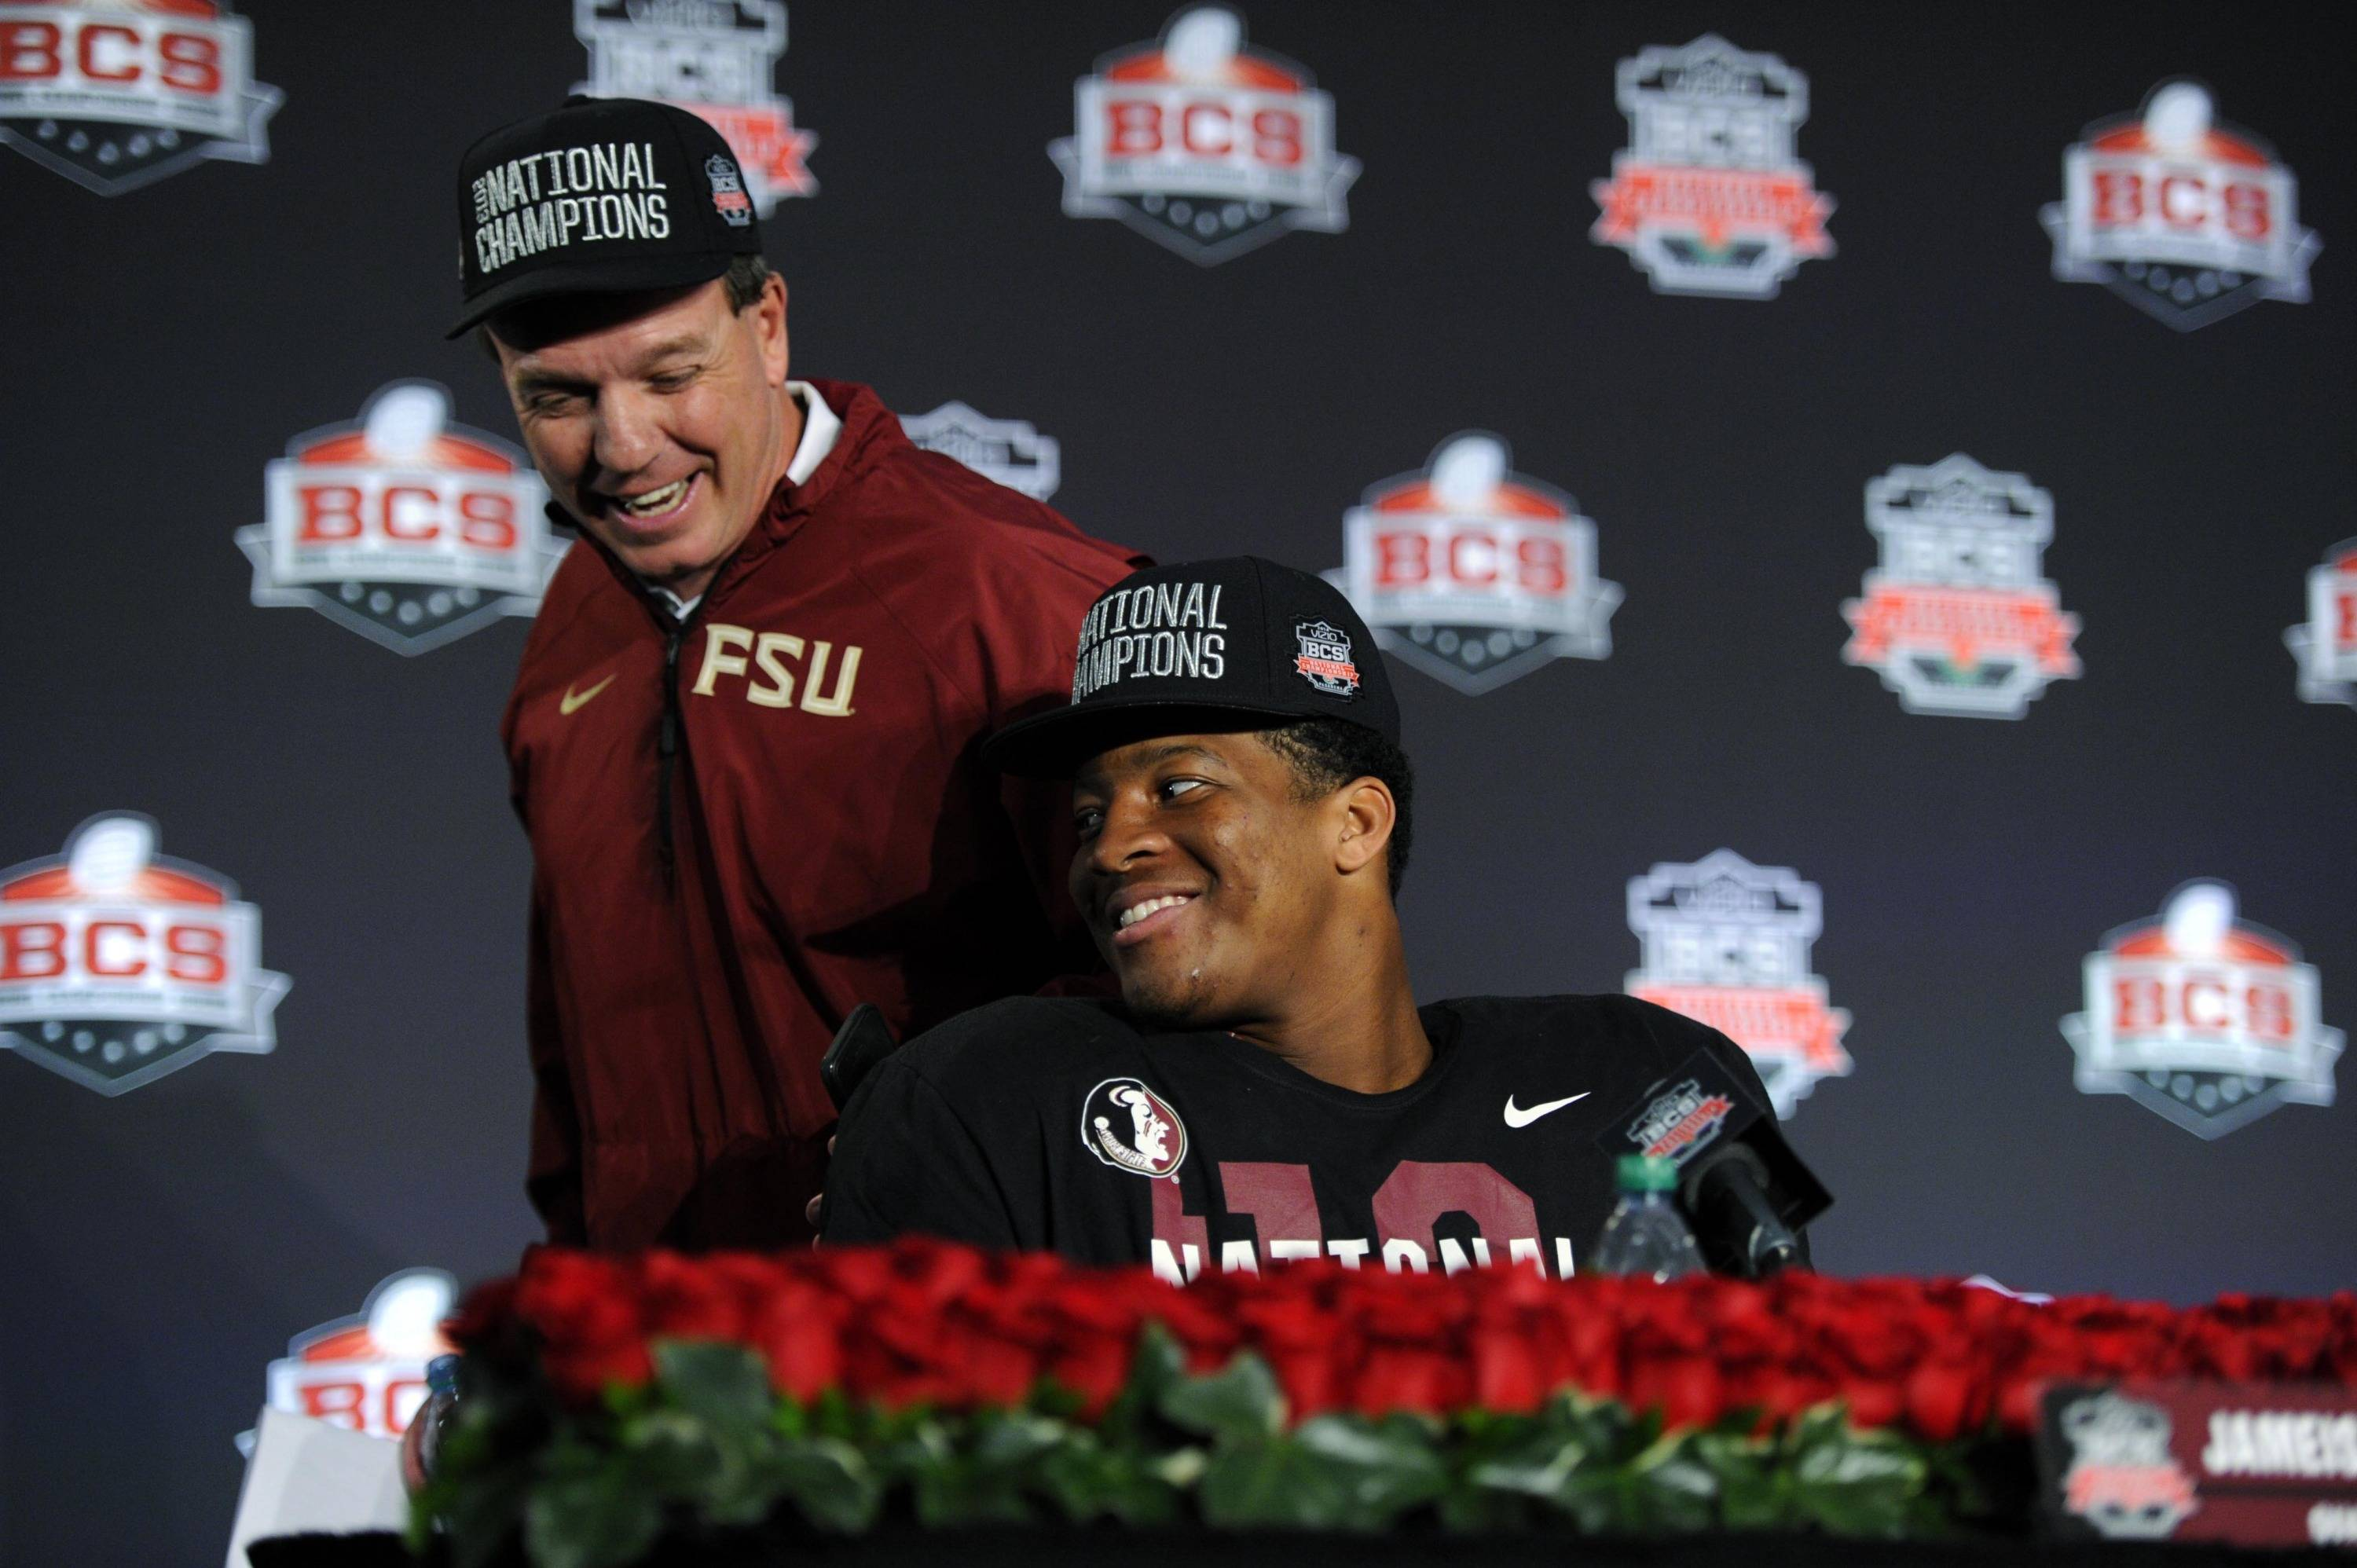 Jan 6, 2014; Pasadena, CA, USA; Florida State Seminoles head coach Jimbo Fisher (left) walks past quarterback Jameis Winston (right) at a press conference after the 2014 BCS National Championship game against the Auburn Tigers at the Rose Bowl.  Mandatory Credit: Kirby Lee-USA TODAY Sports